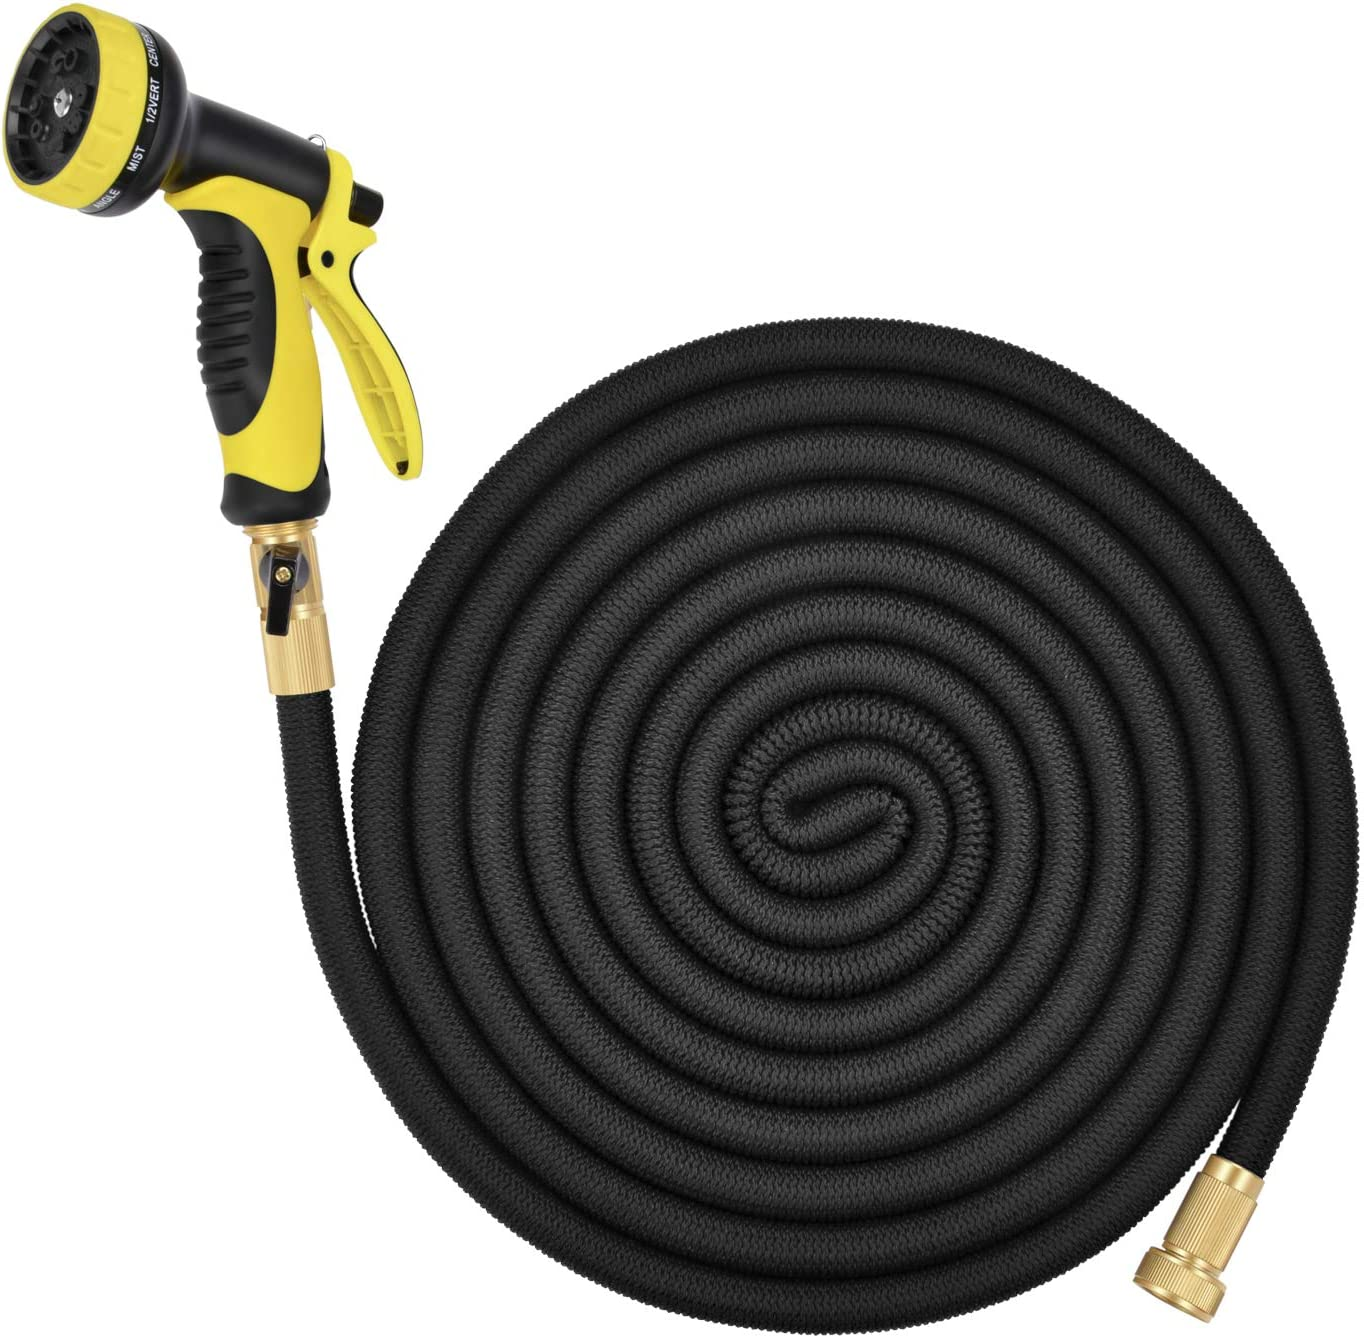 Lightweight Expandable Solid Brass Valve Connector Garden Hose with 10 Pattern Spray Nozzle - 100FT Black